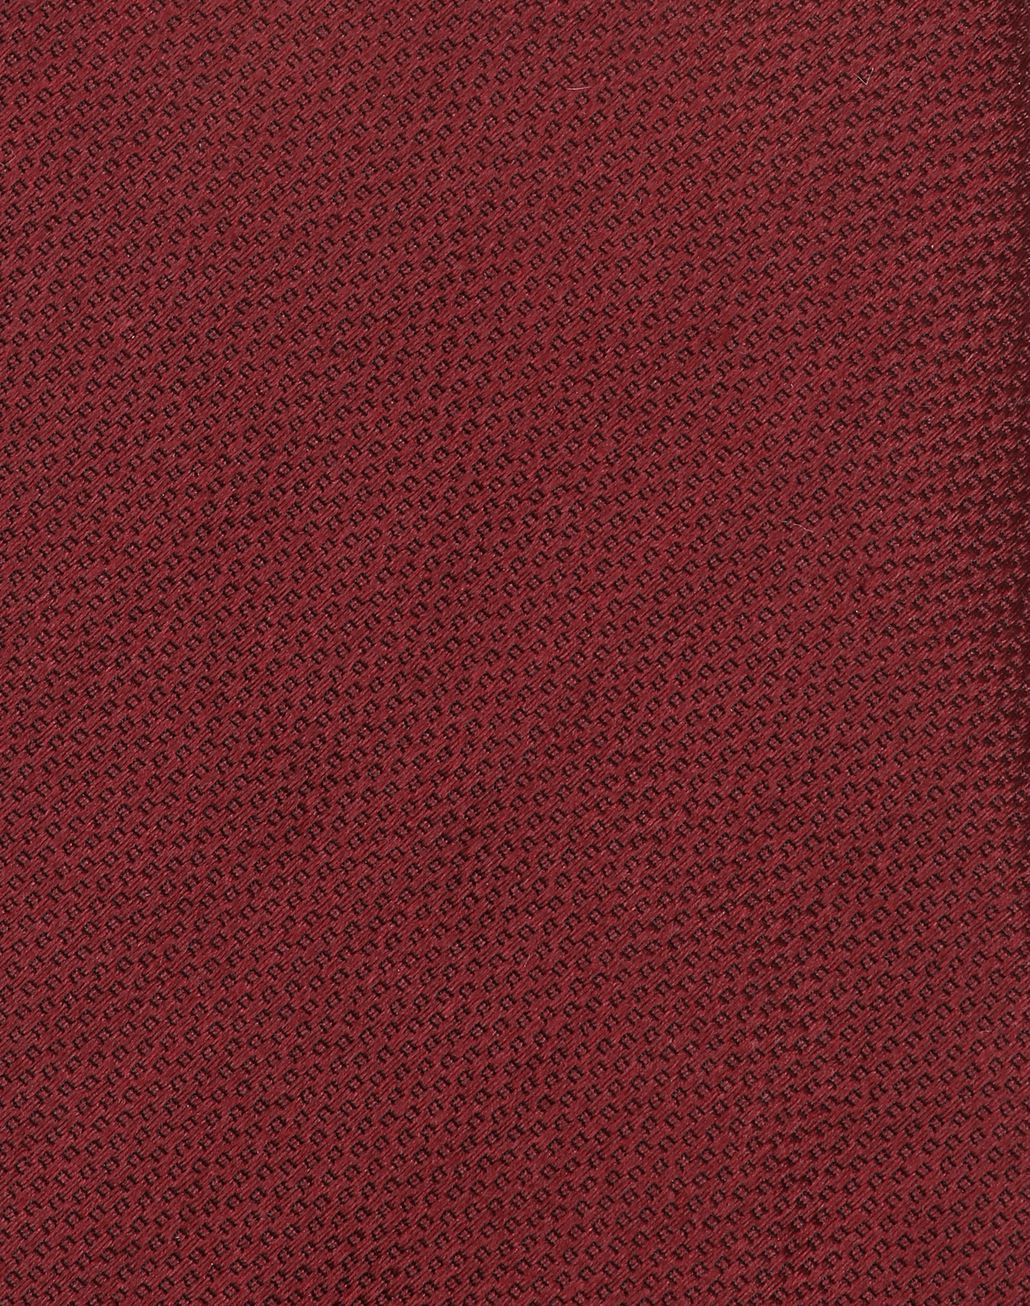 BRIONI Cravate tissée bordeaux Cravate Homme d